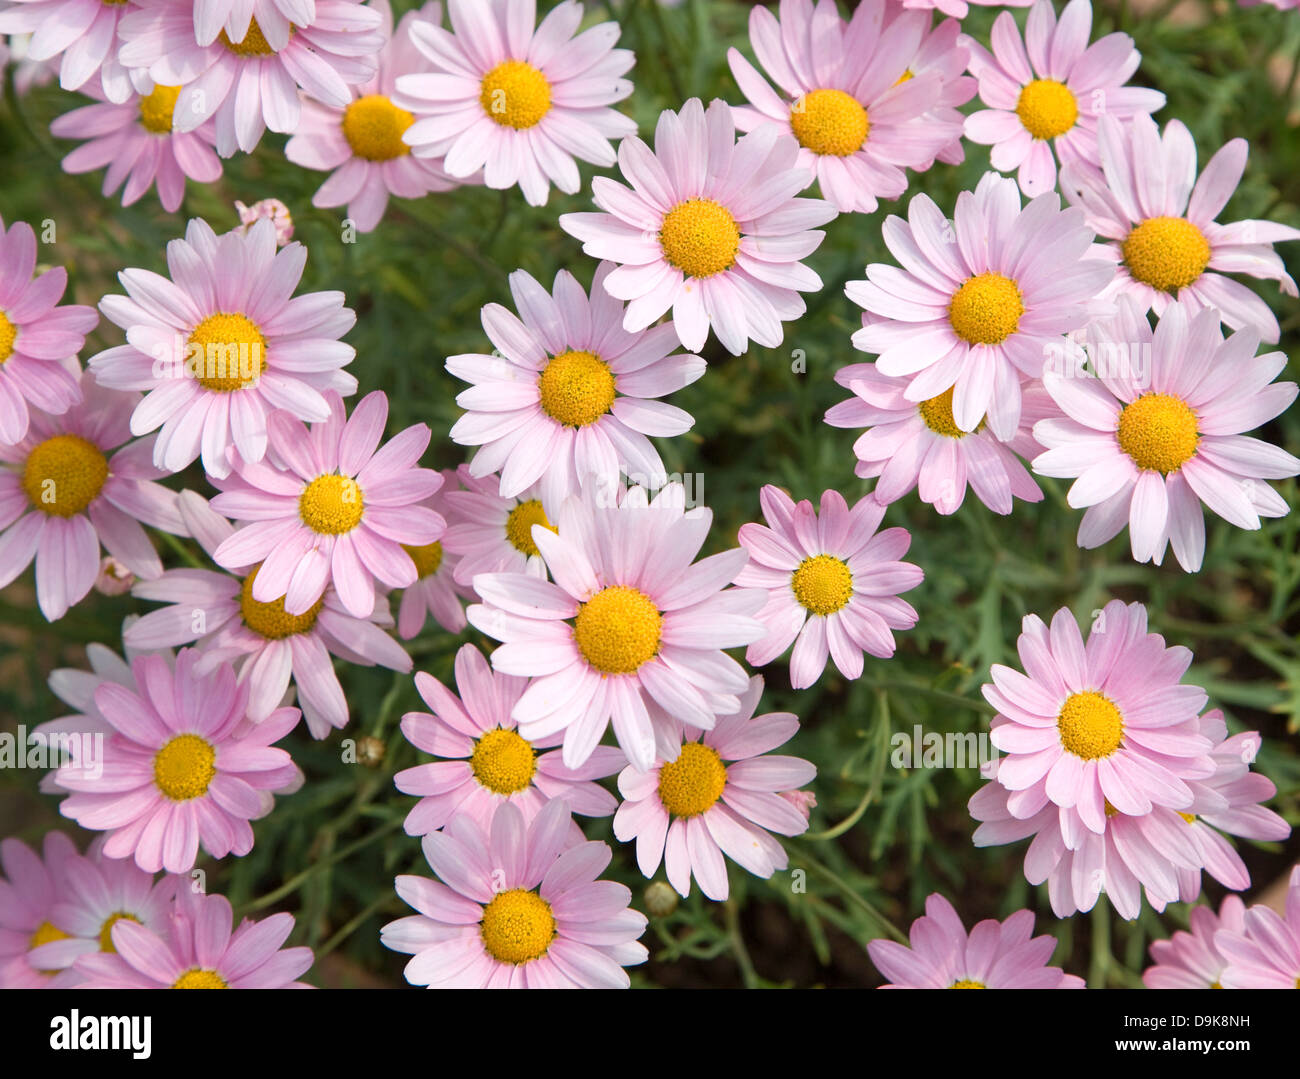 Pink daisy like flower stock photos pink daisy like flower stock argyranthemum pink daisy like flowers stock image izmirmasajfo